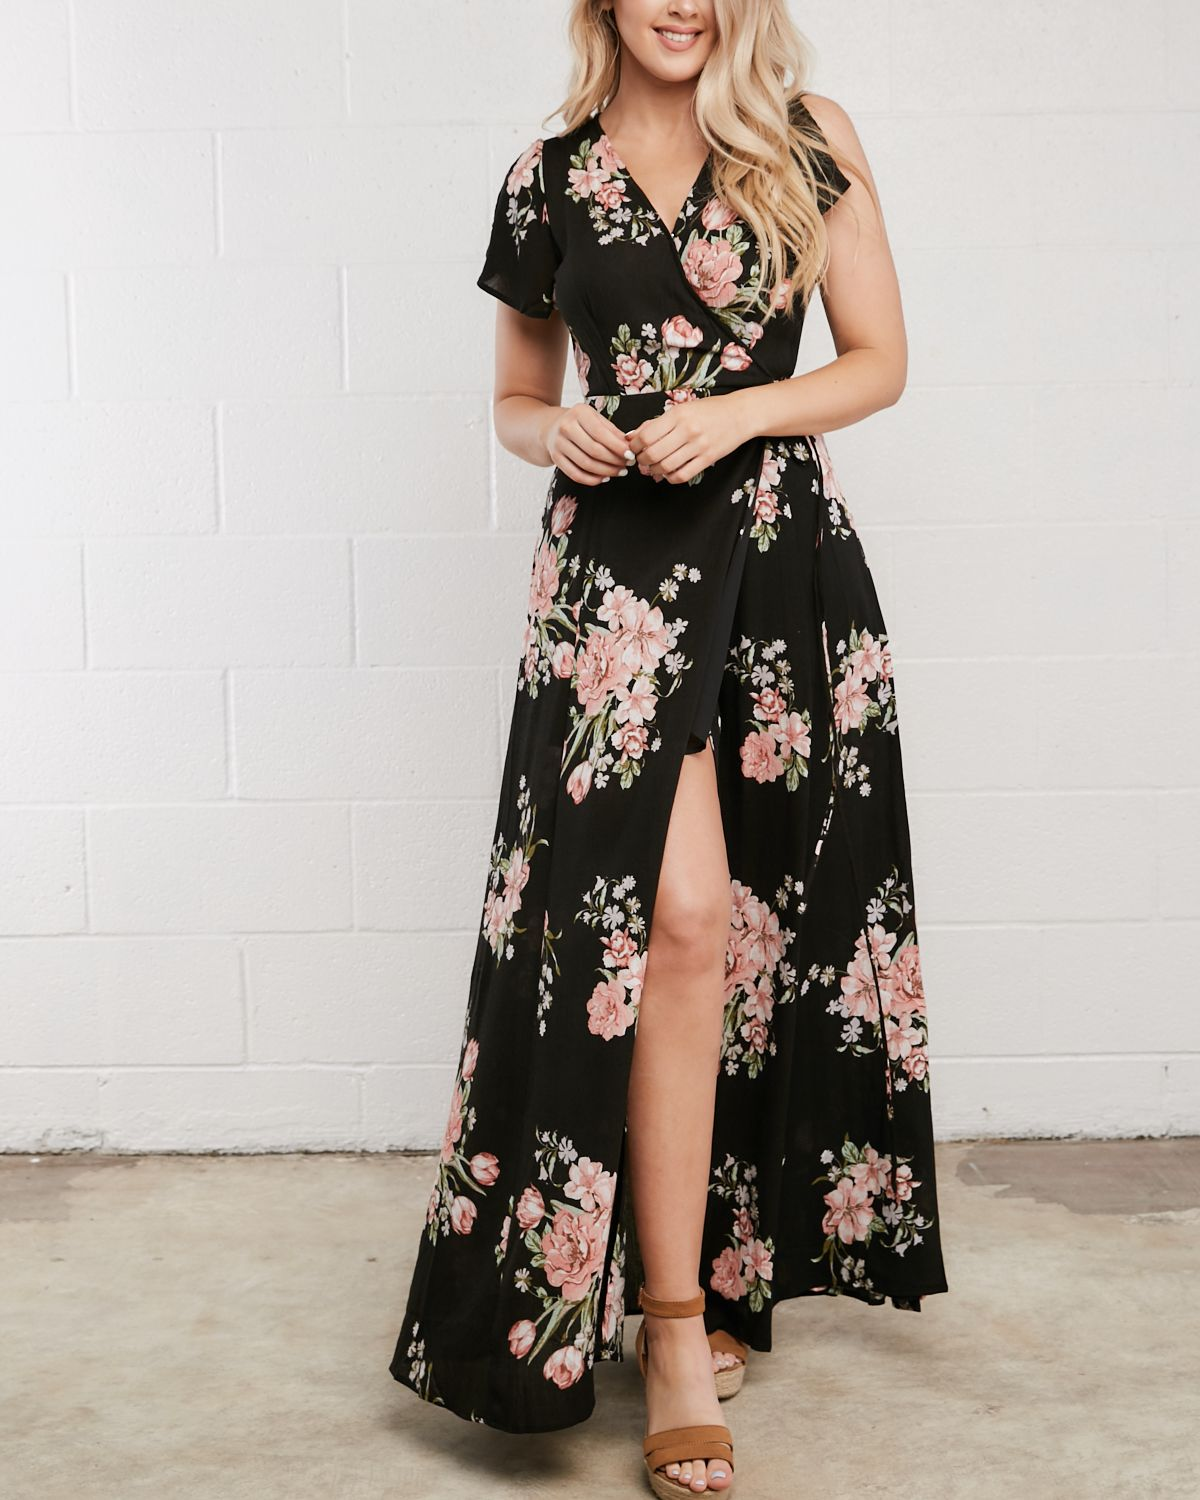 Floral wrap maxi dress wedding guest outfit idea spring summer